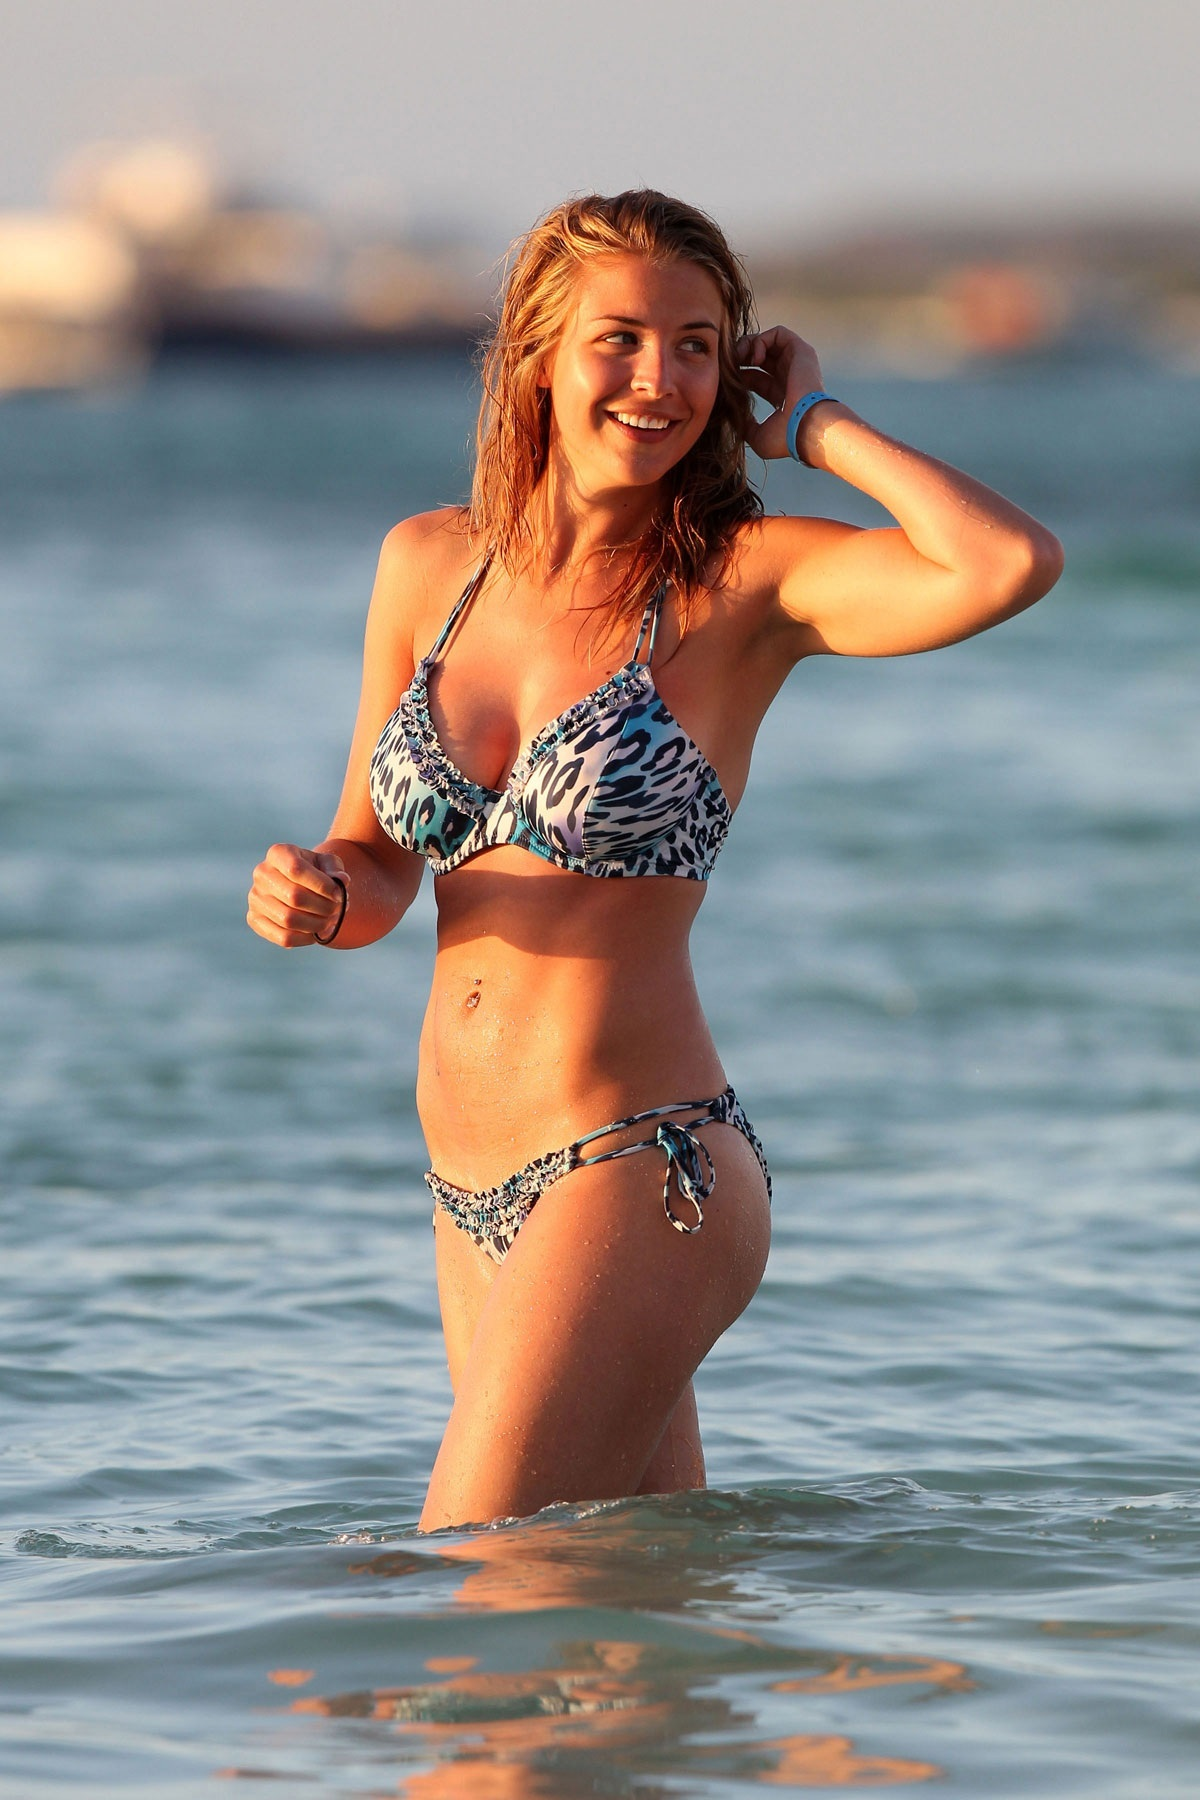 Gemma Atkinson In Bikini On Beach In Aruba Gemma Atkinson